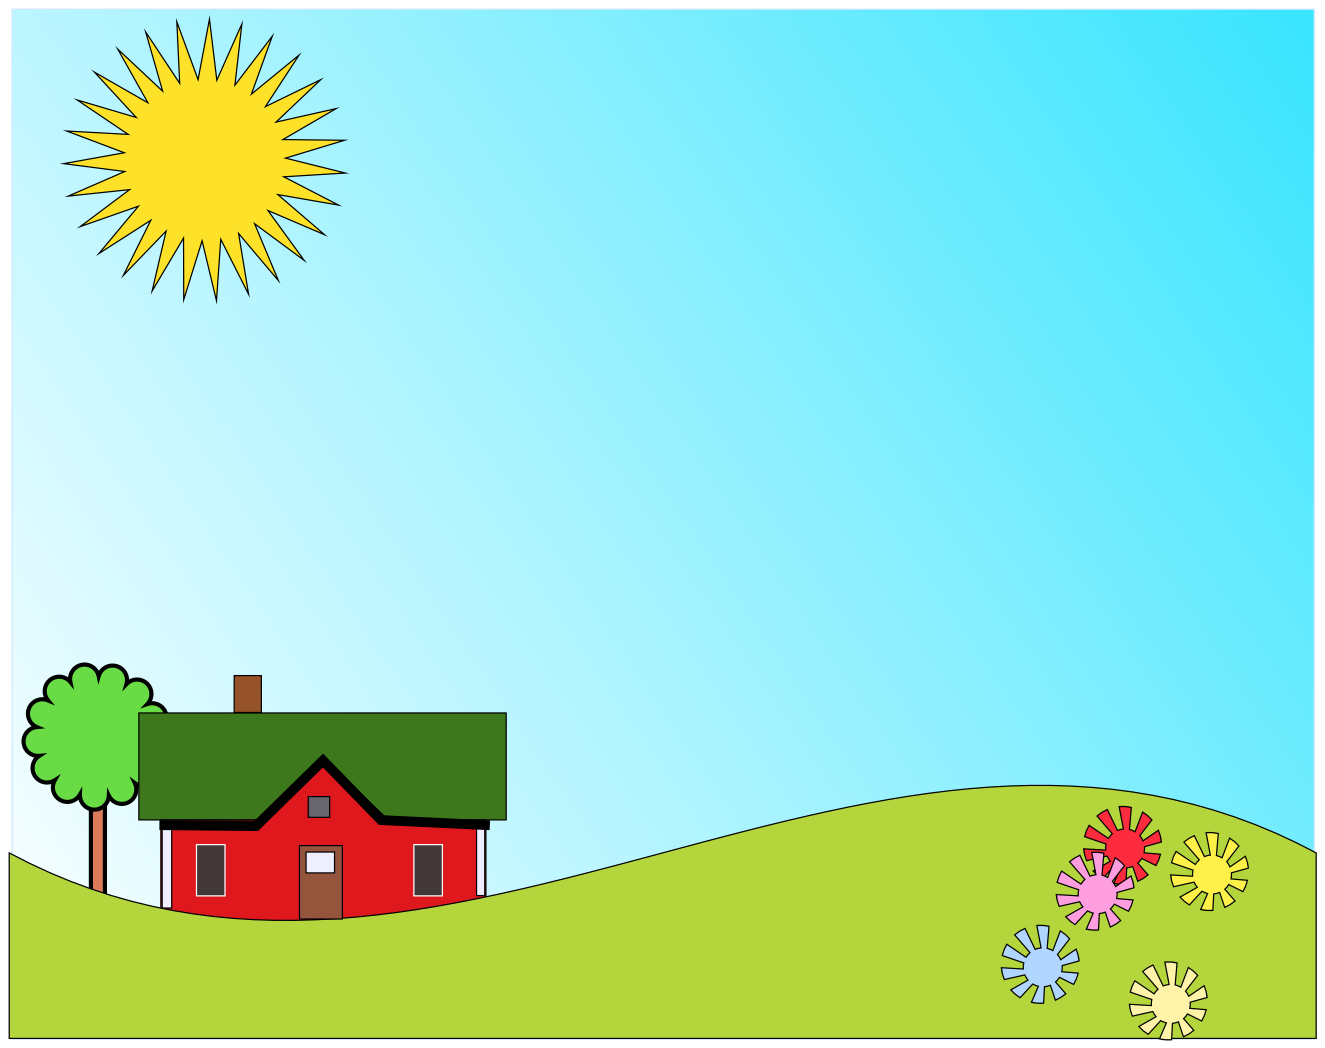 day clipart clipground daycare clipart clipart day and night